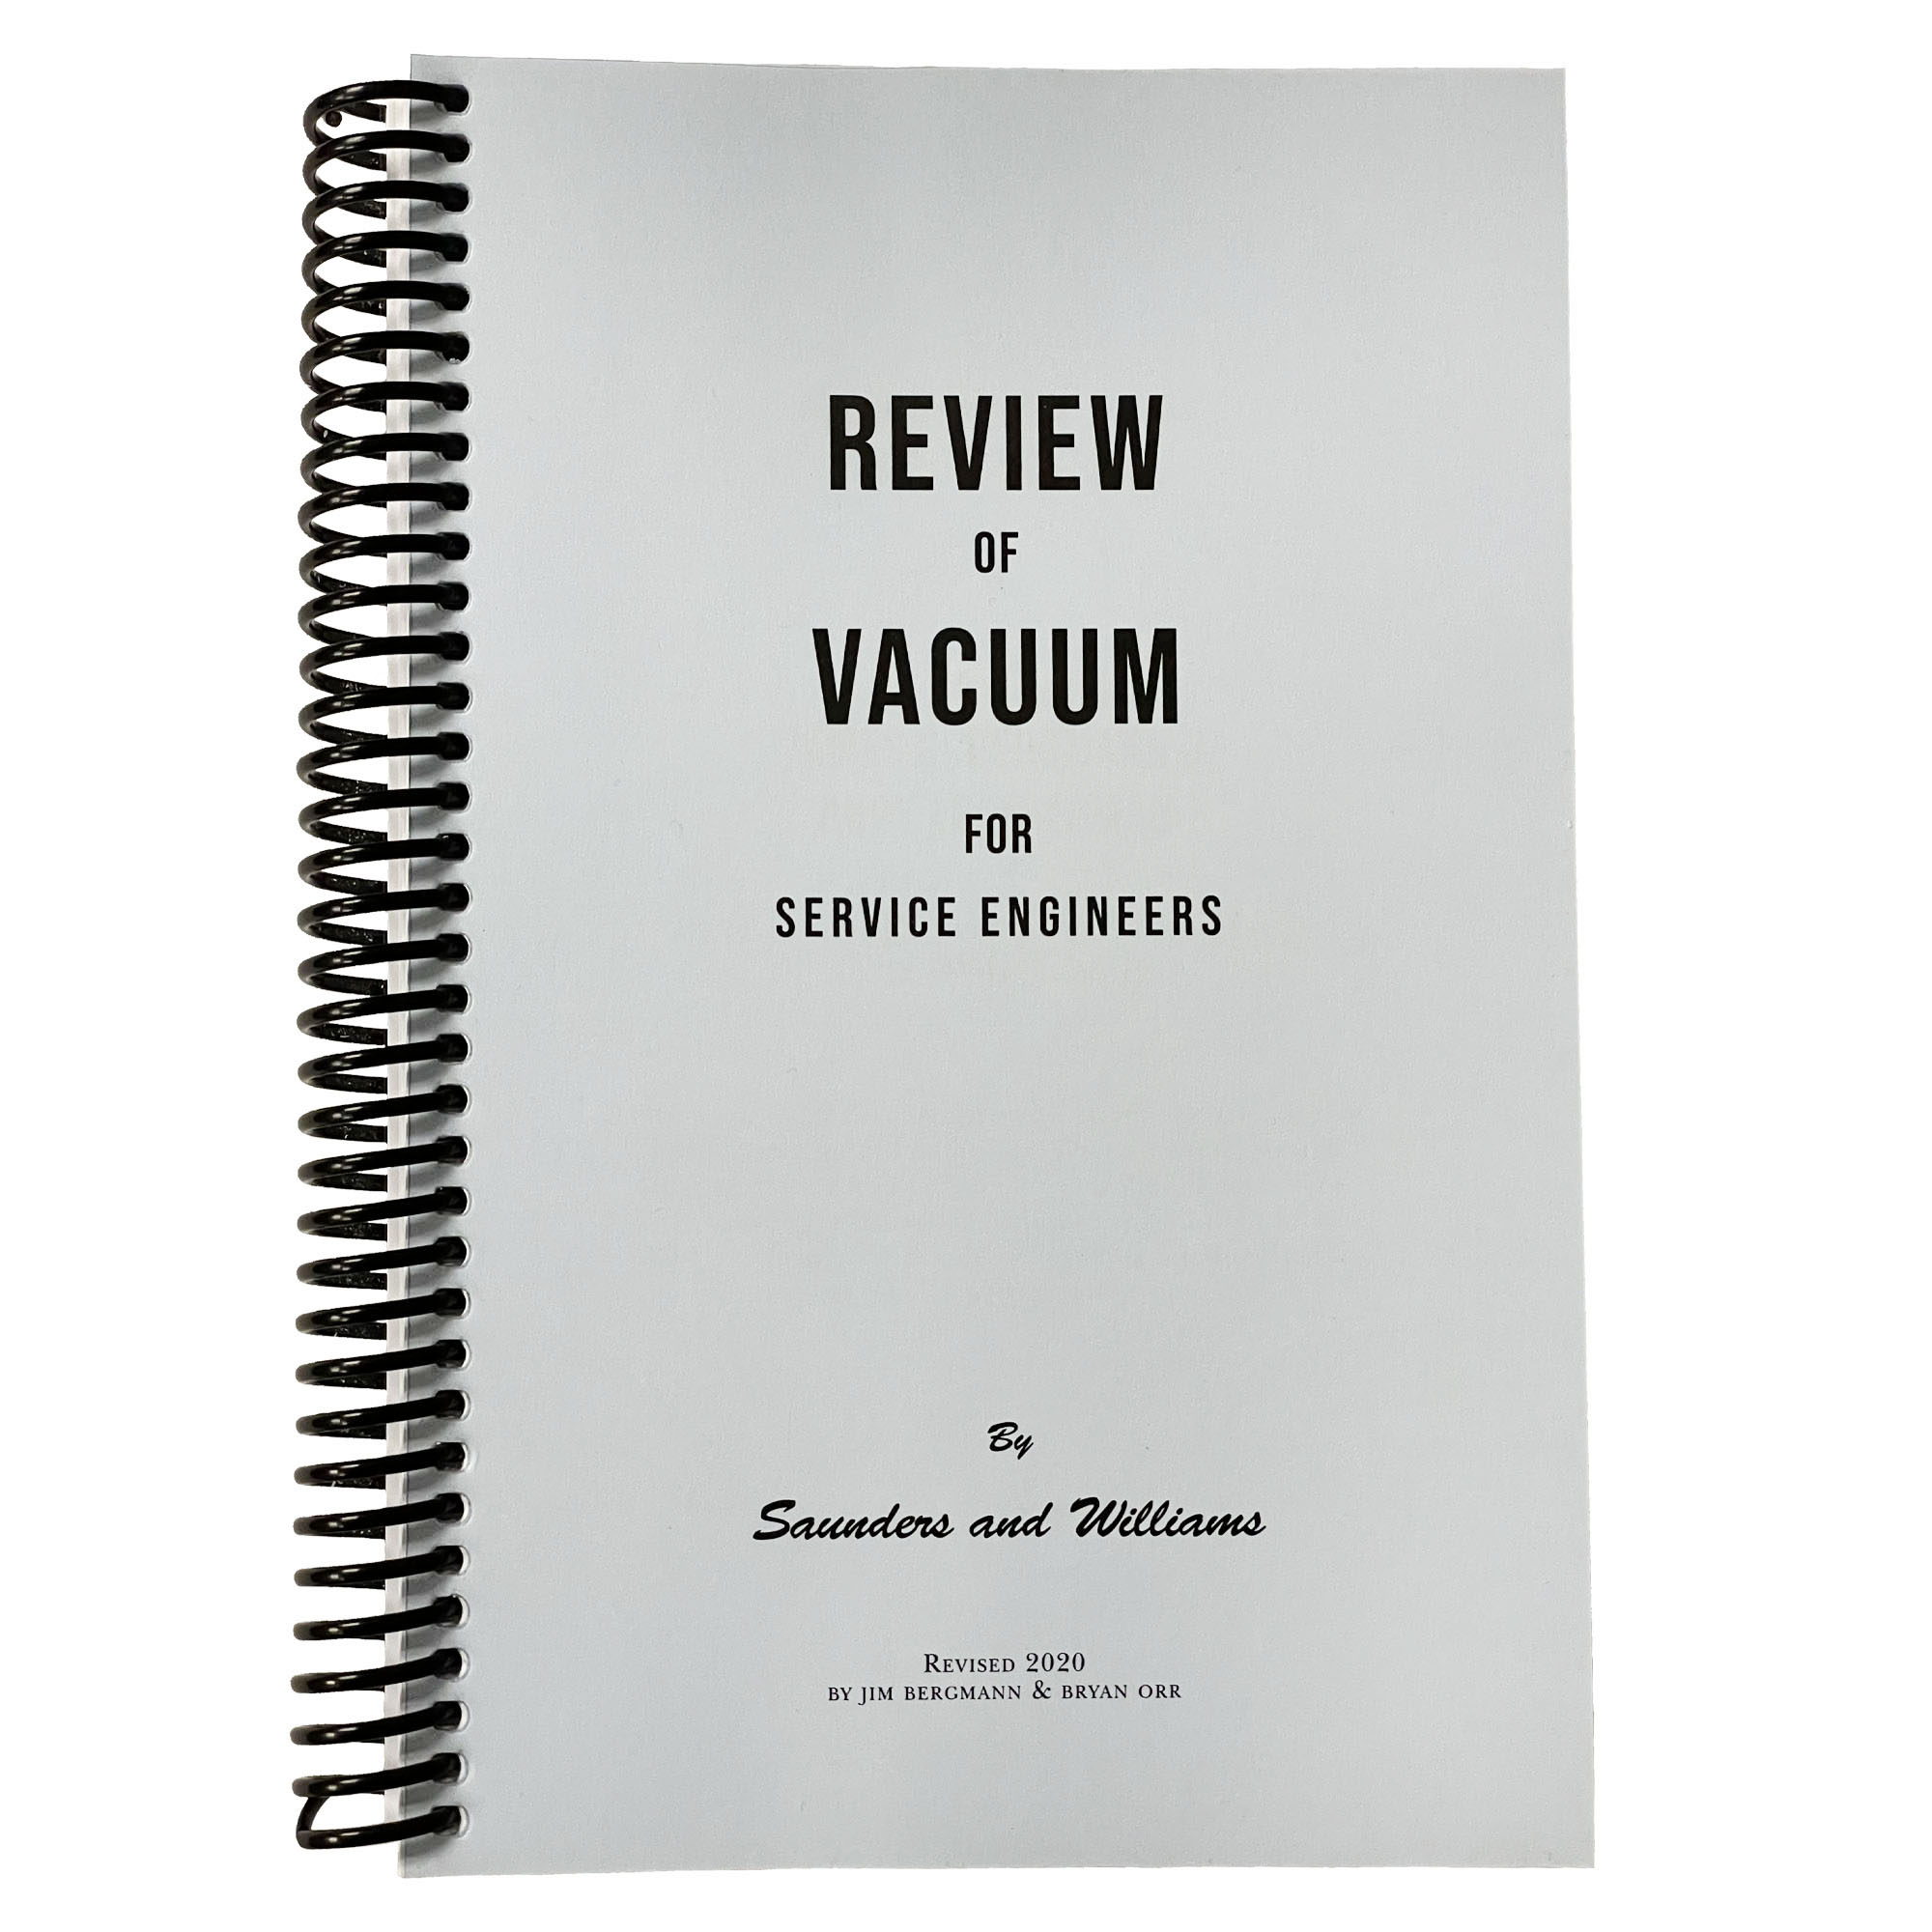 AccuTools Review of Vacuum for Service Engineers - Revised 2020